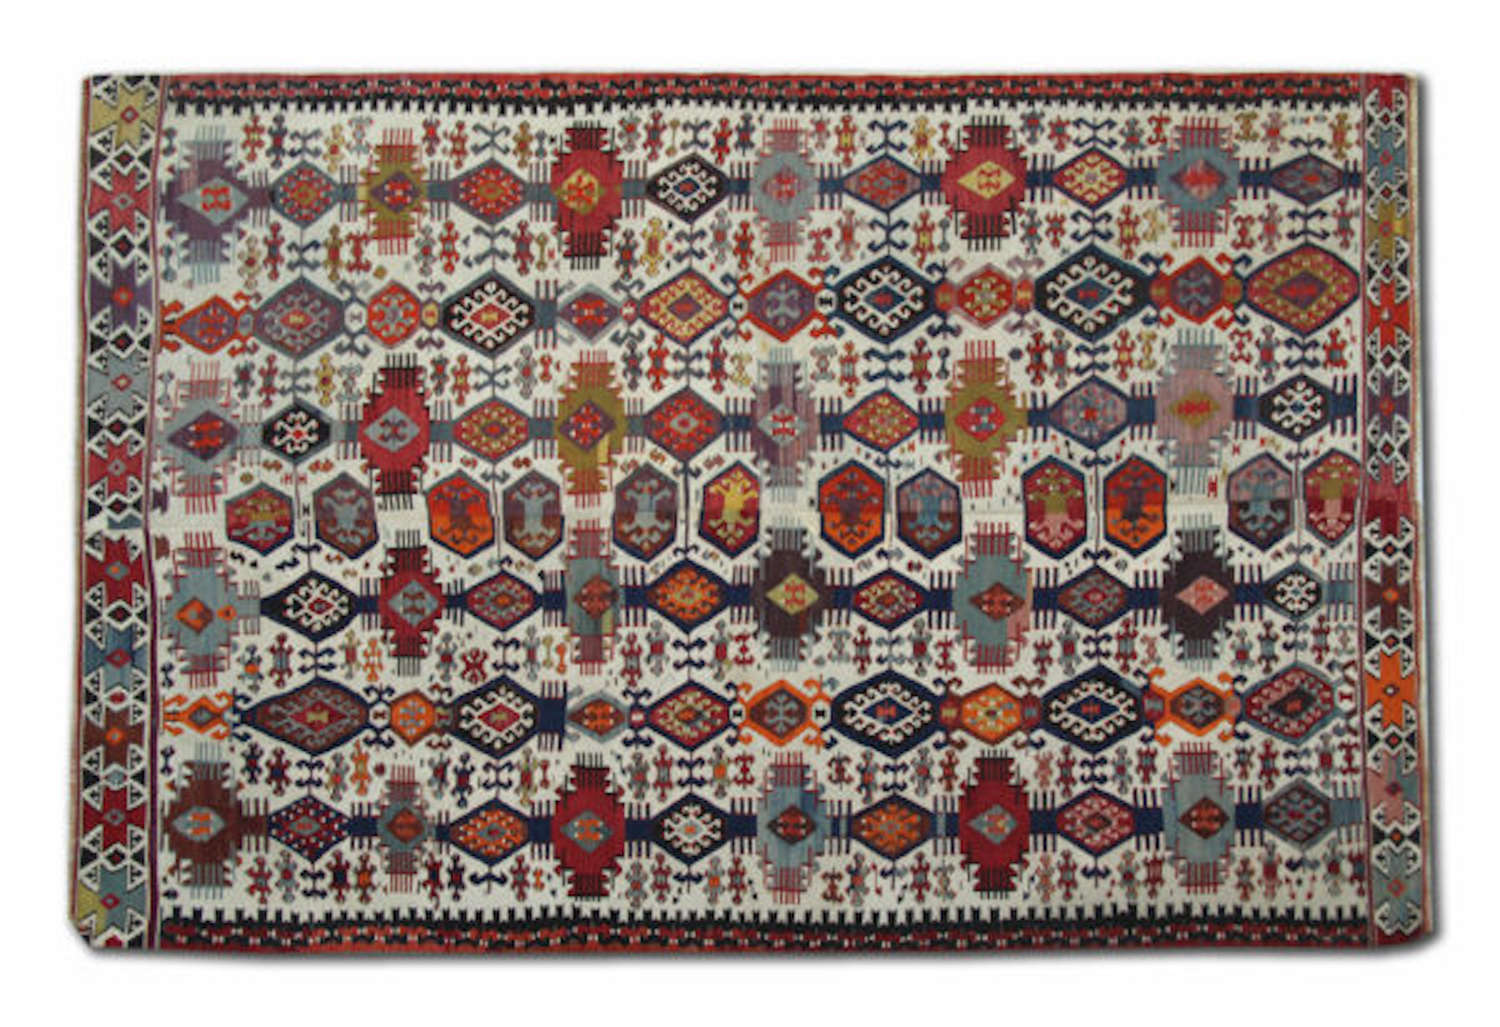 Antique Turkish Kilim Rug/ Turkish Kilim Rug